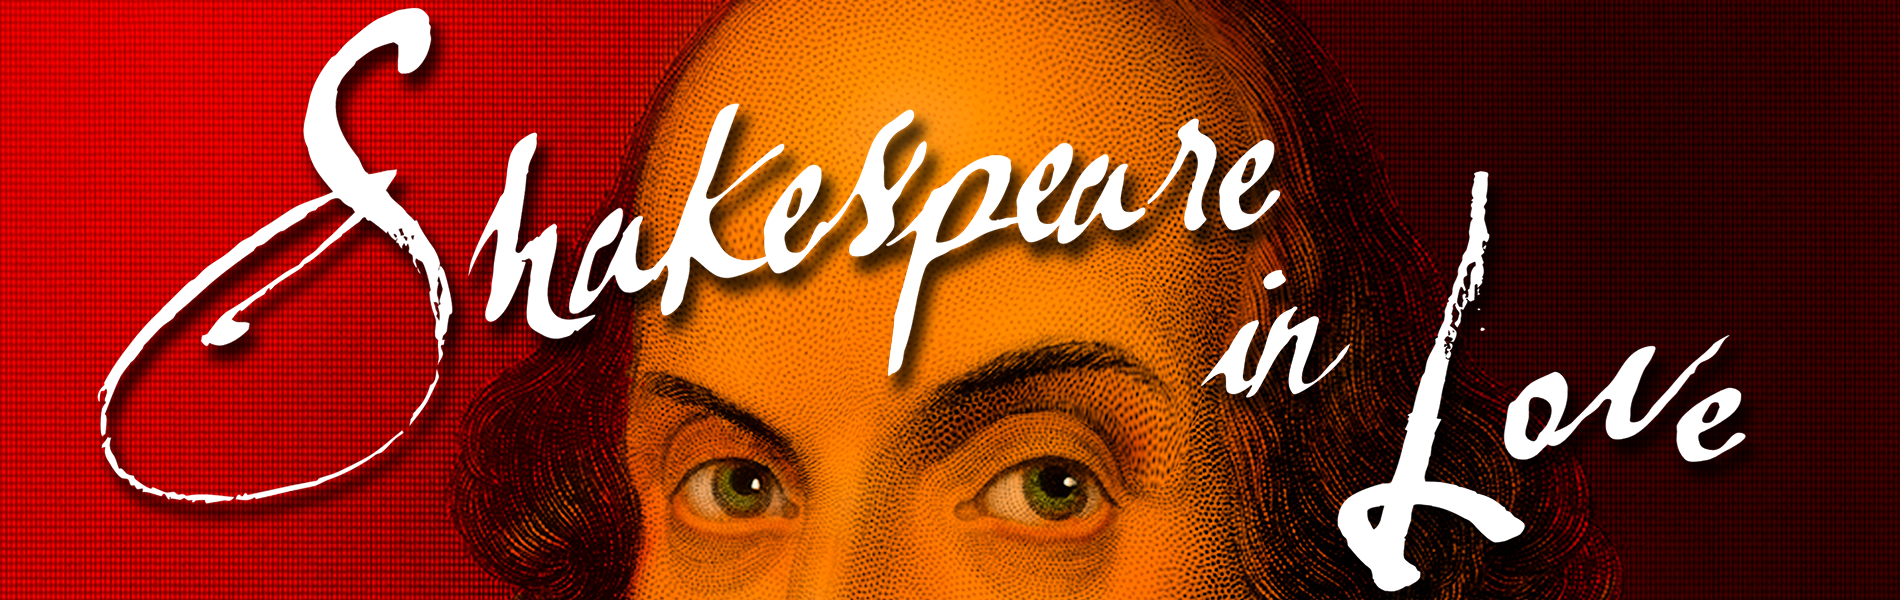 Shakespeare-Banner-pdx.live.png